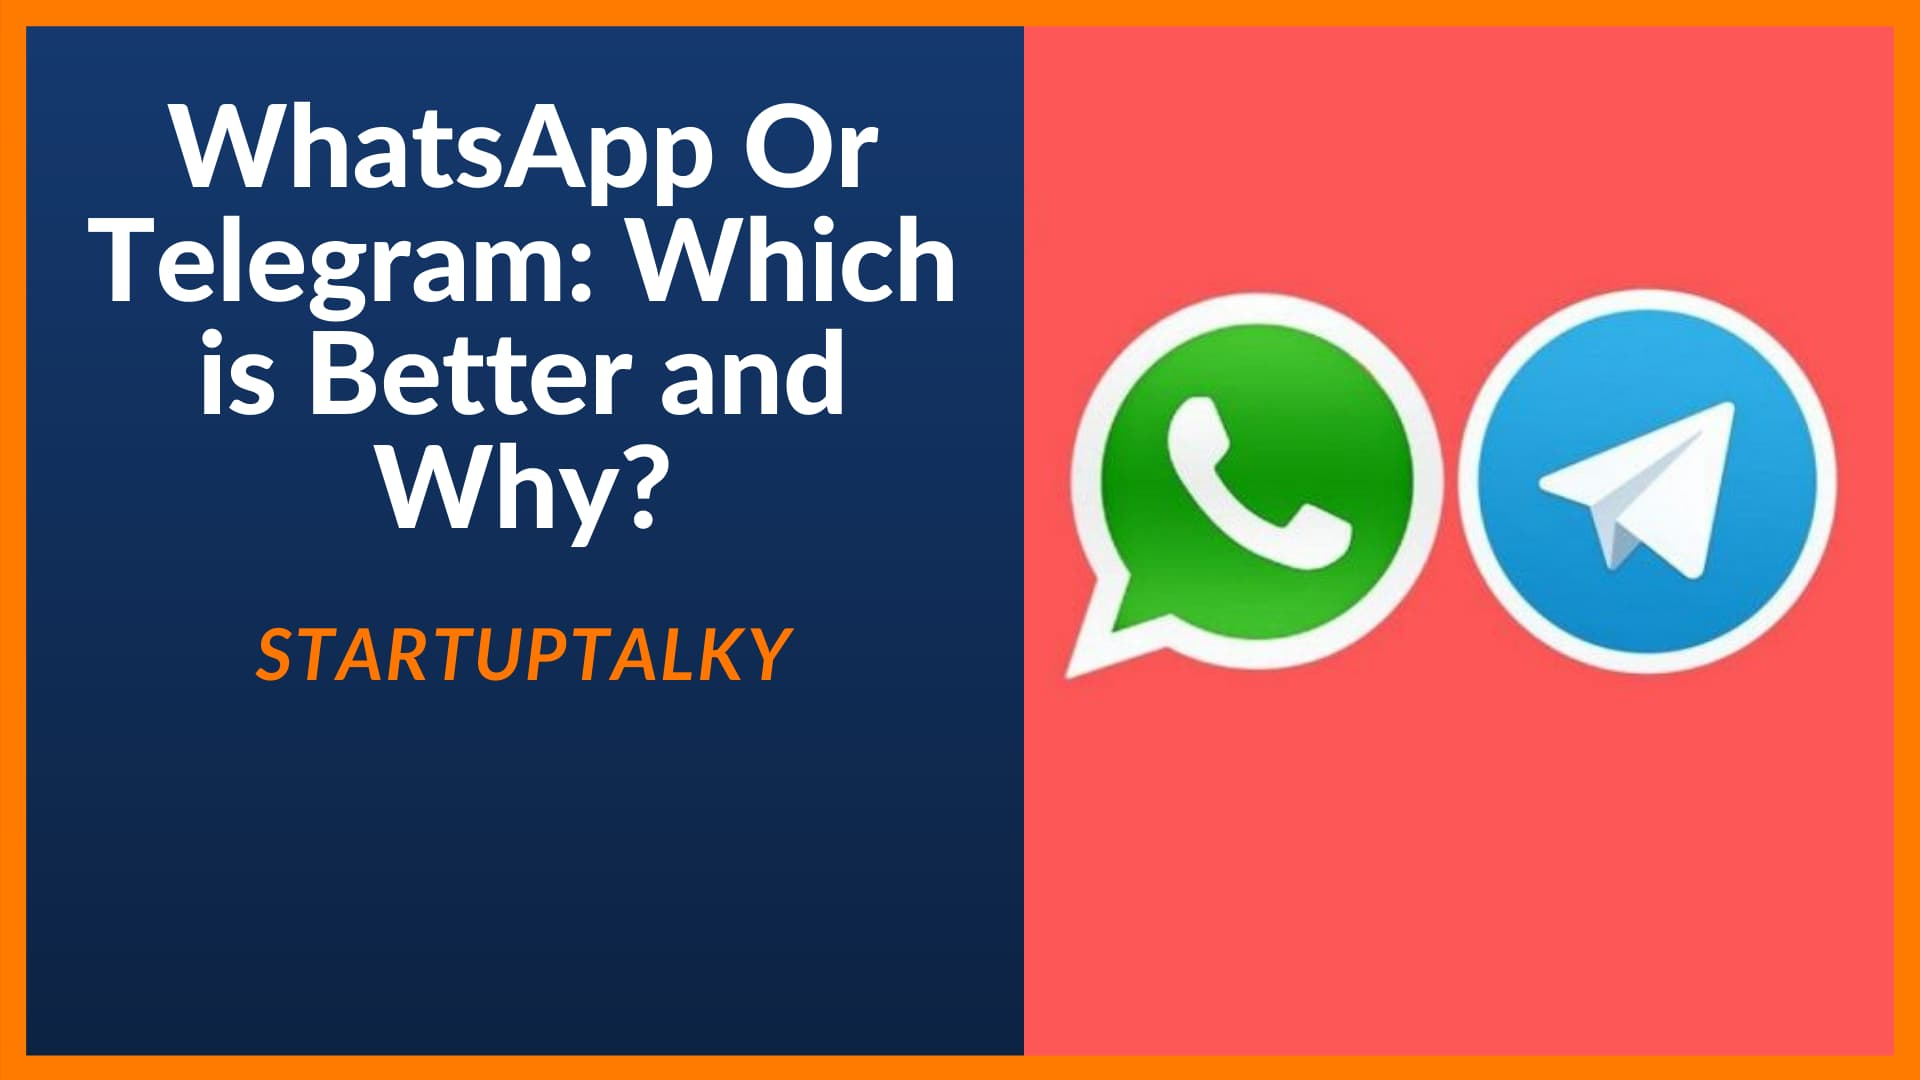 WhatsApp Or Telegram: Which is Better and Why?